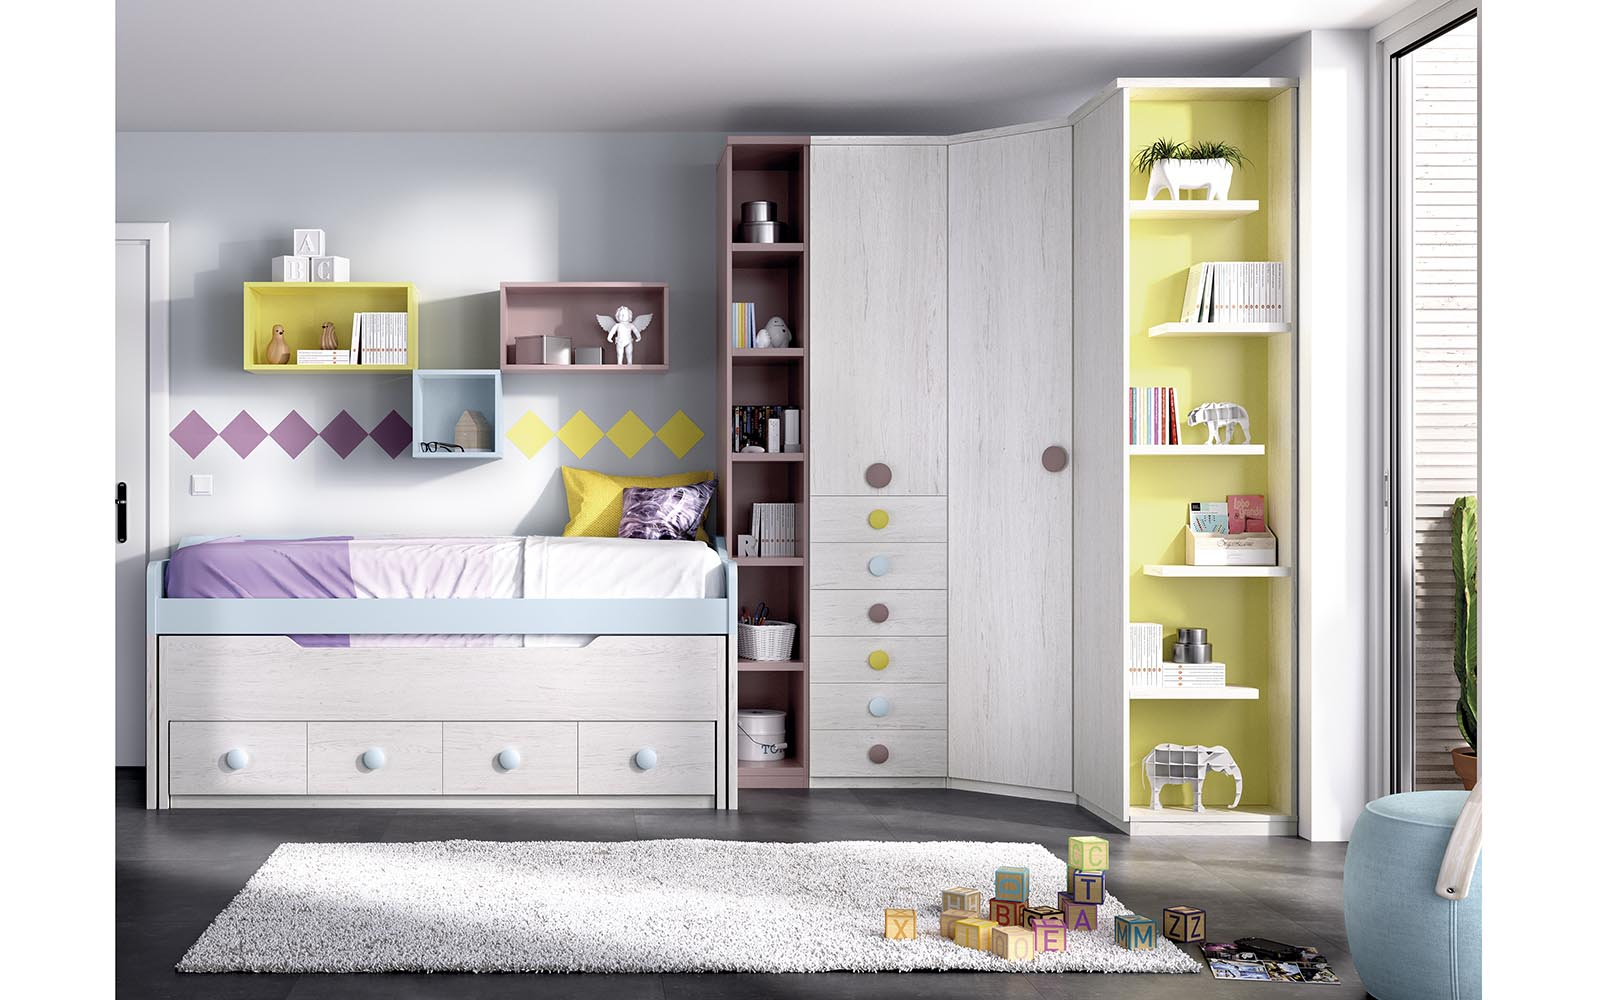 xilino krevati psilo se ipsos me prasinous xromatismous, grey wooden kids bed with green details and space on the bottom of the bed,